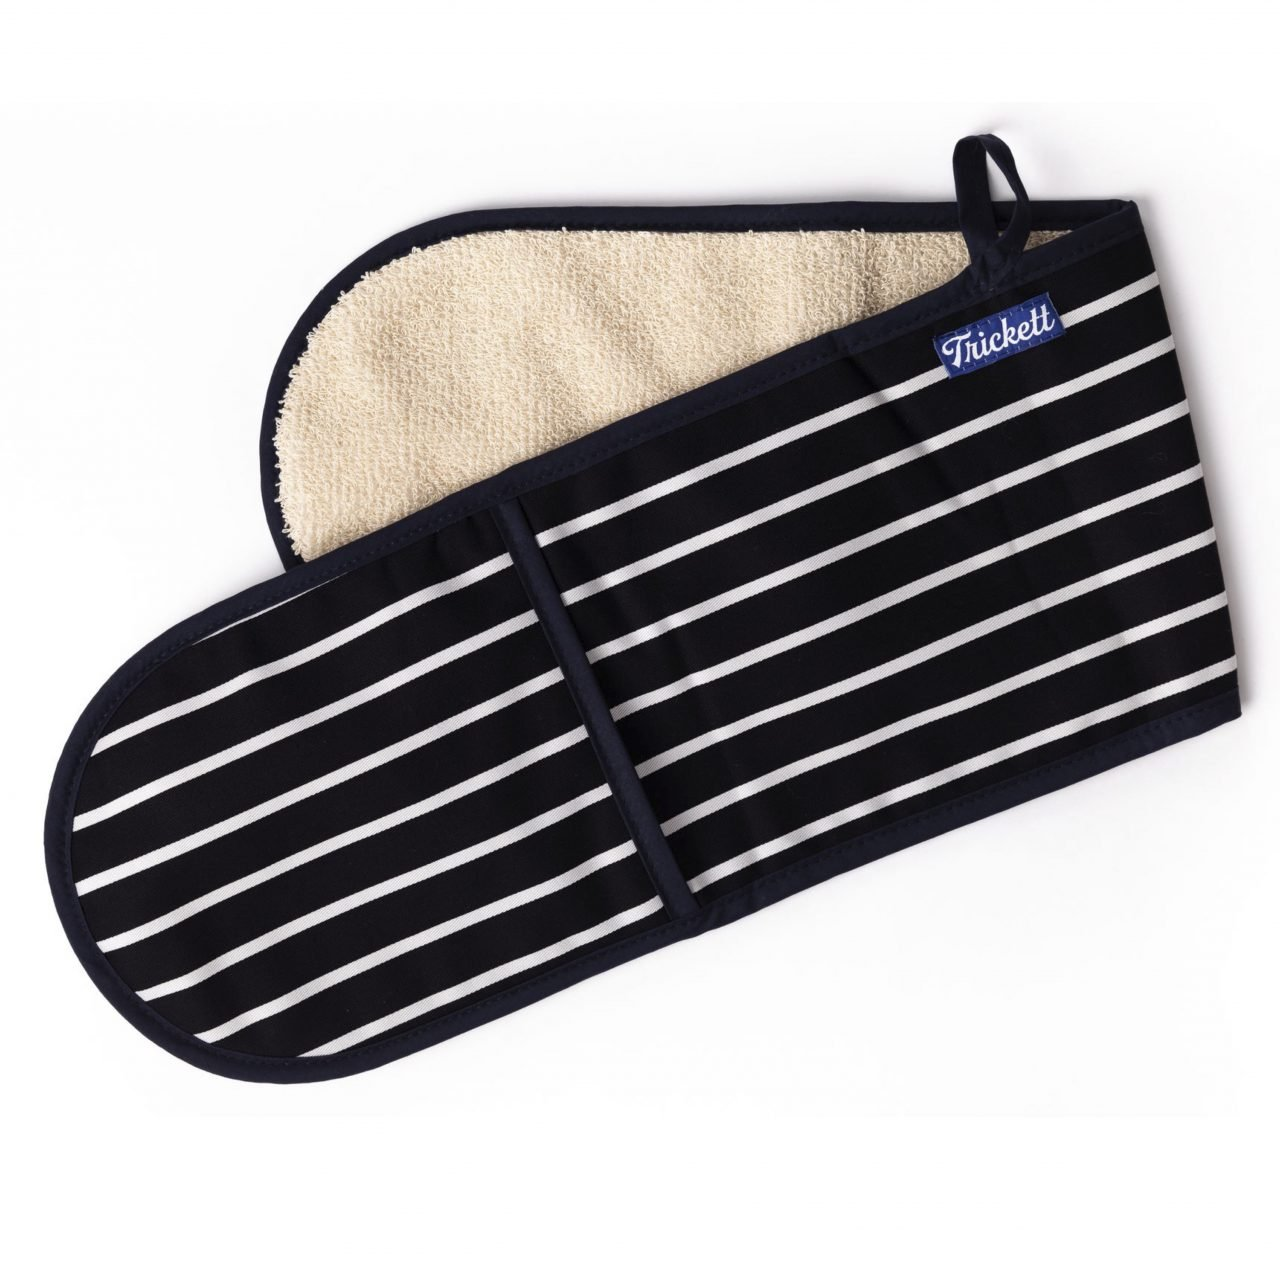 TRiCKETT Double Oven Gloves